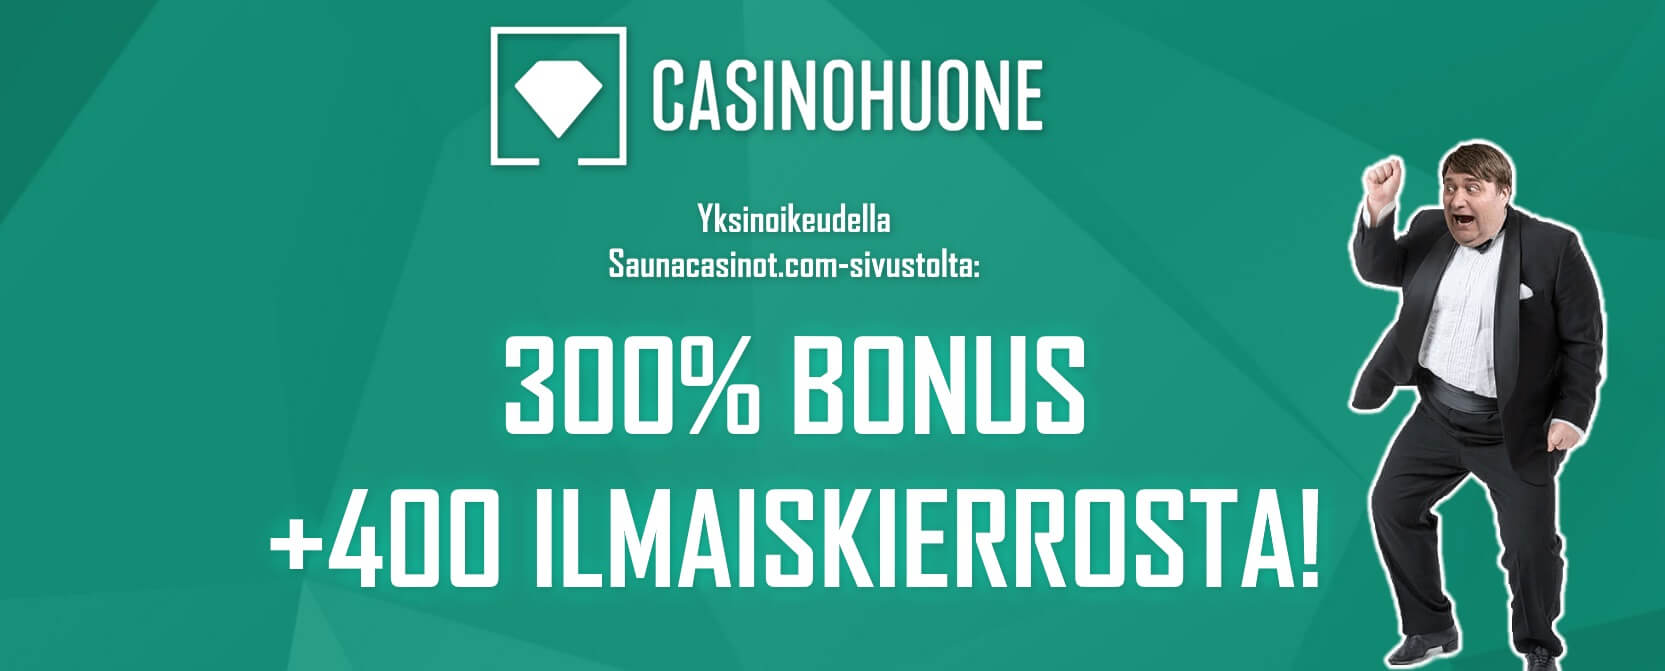 casinohuone banneri - talletusbonus